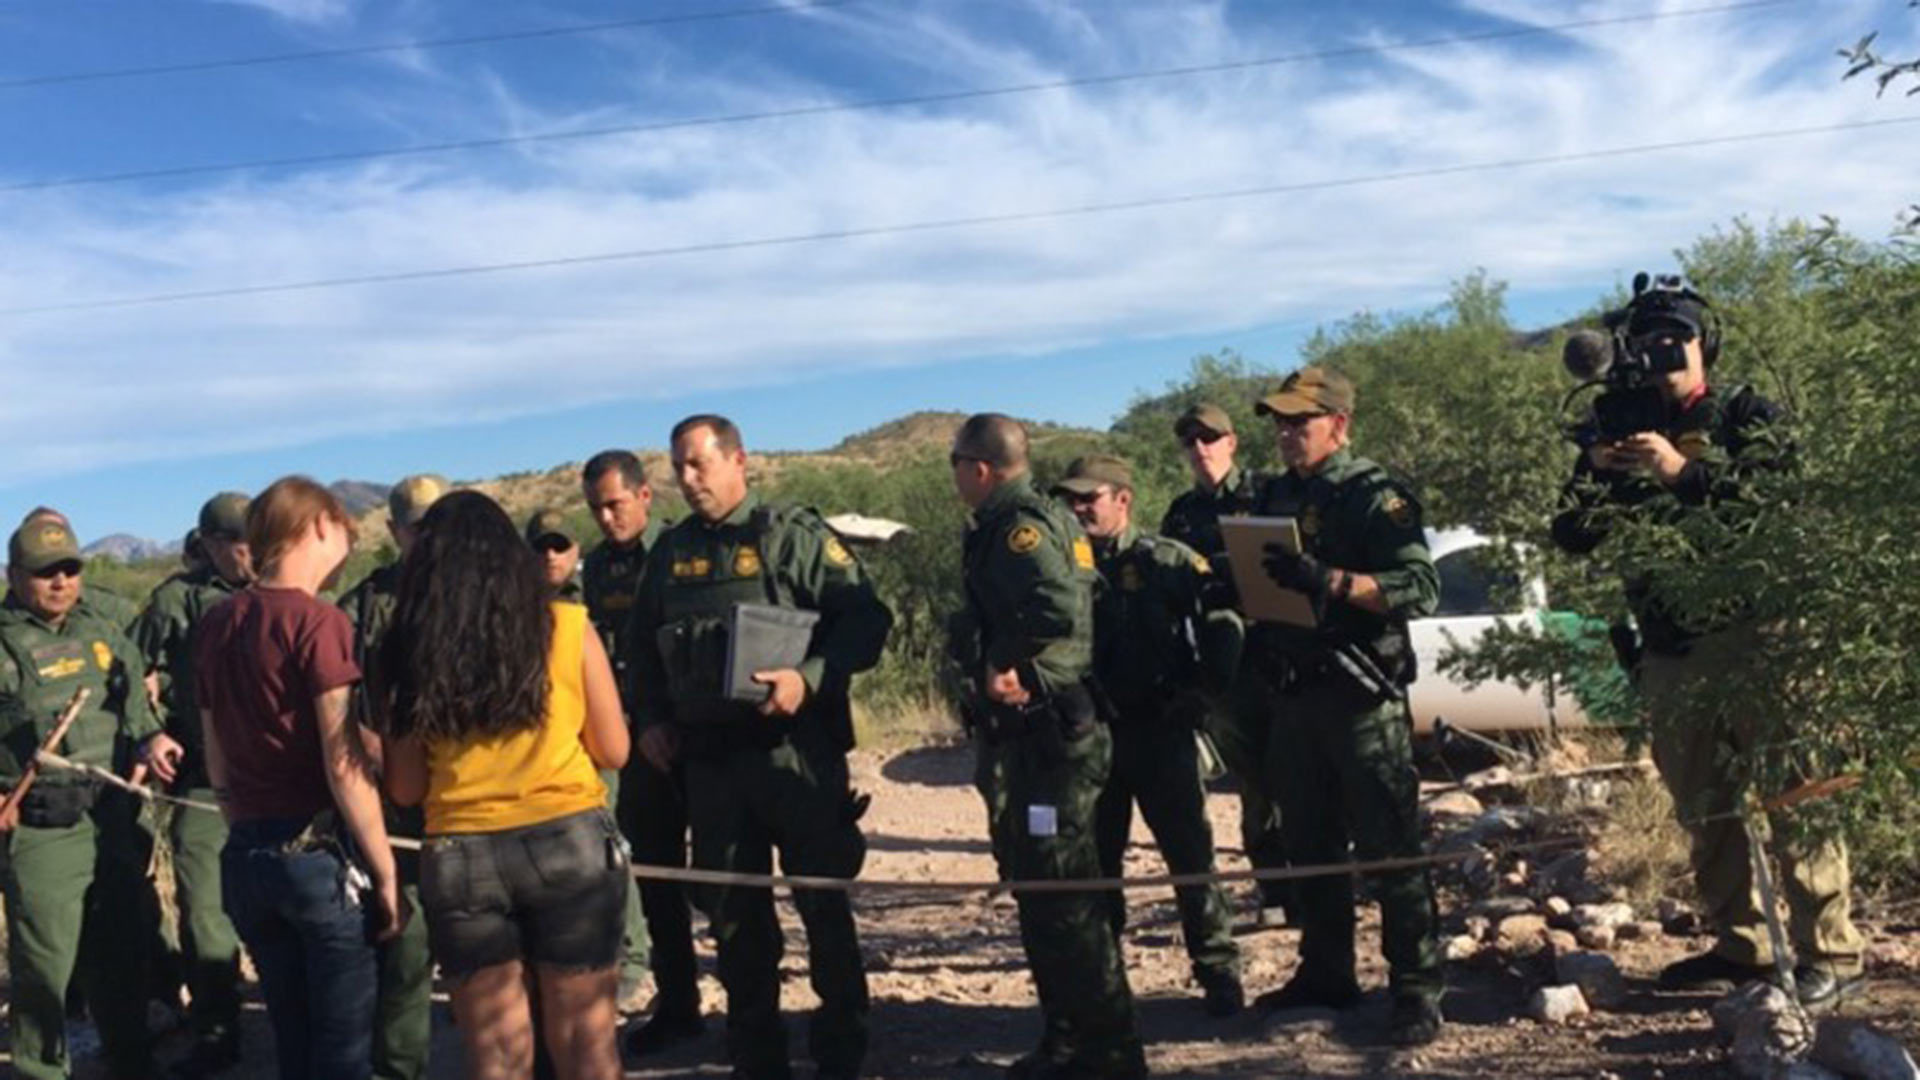 More than 30 Border Patrol agents entered a camp of the No More Death migrant aid group on Tuesday, June 13.